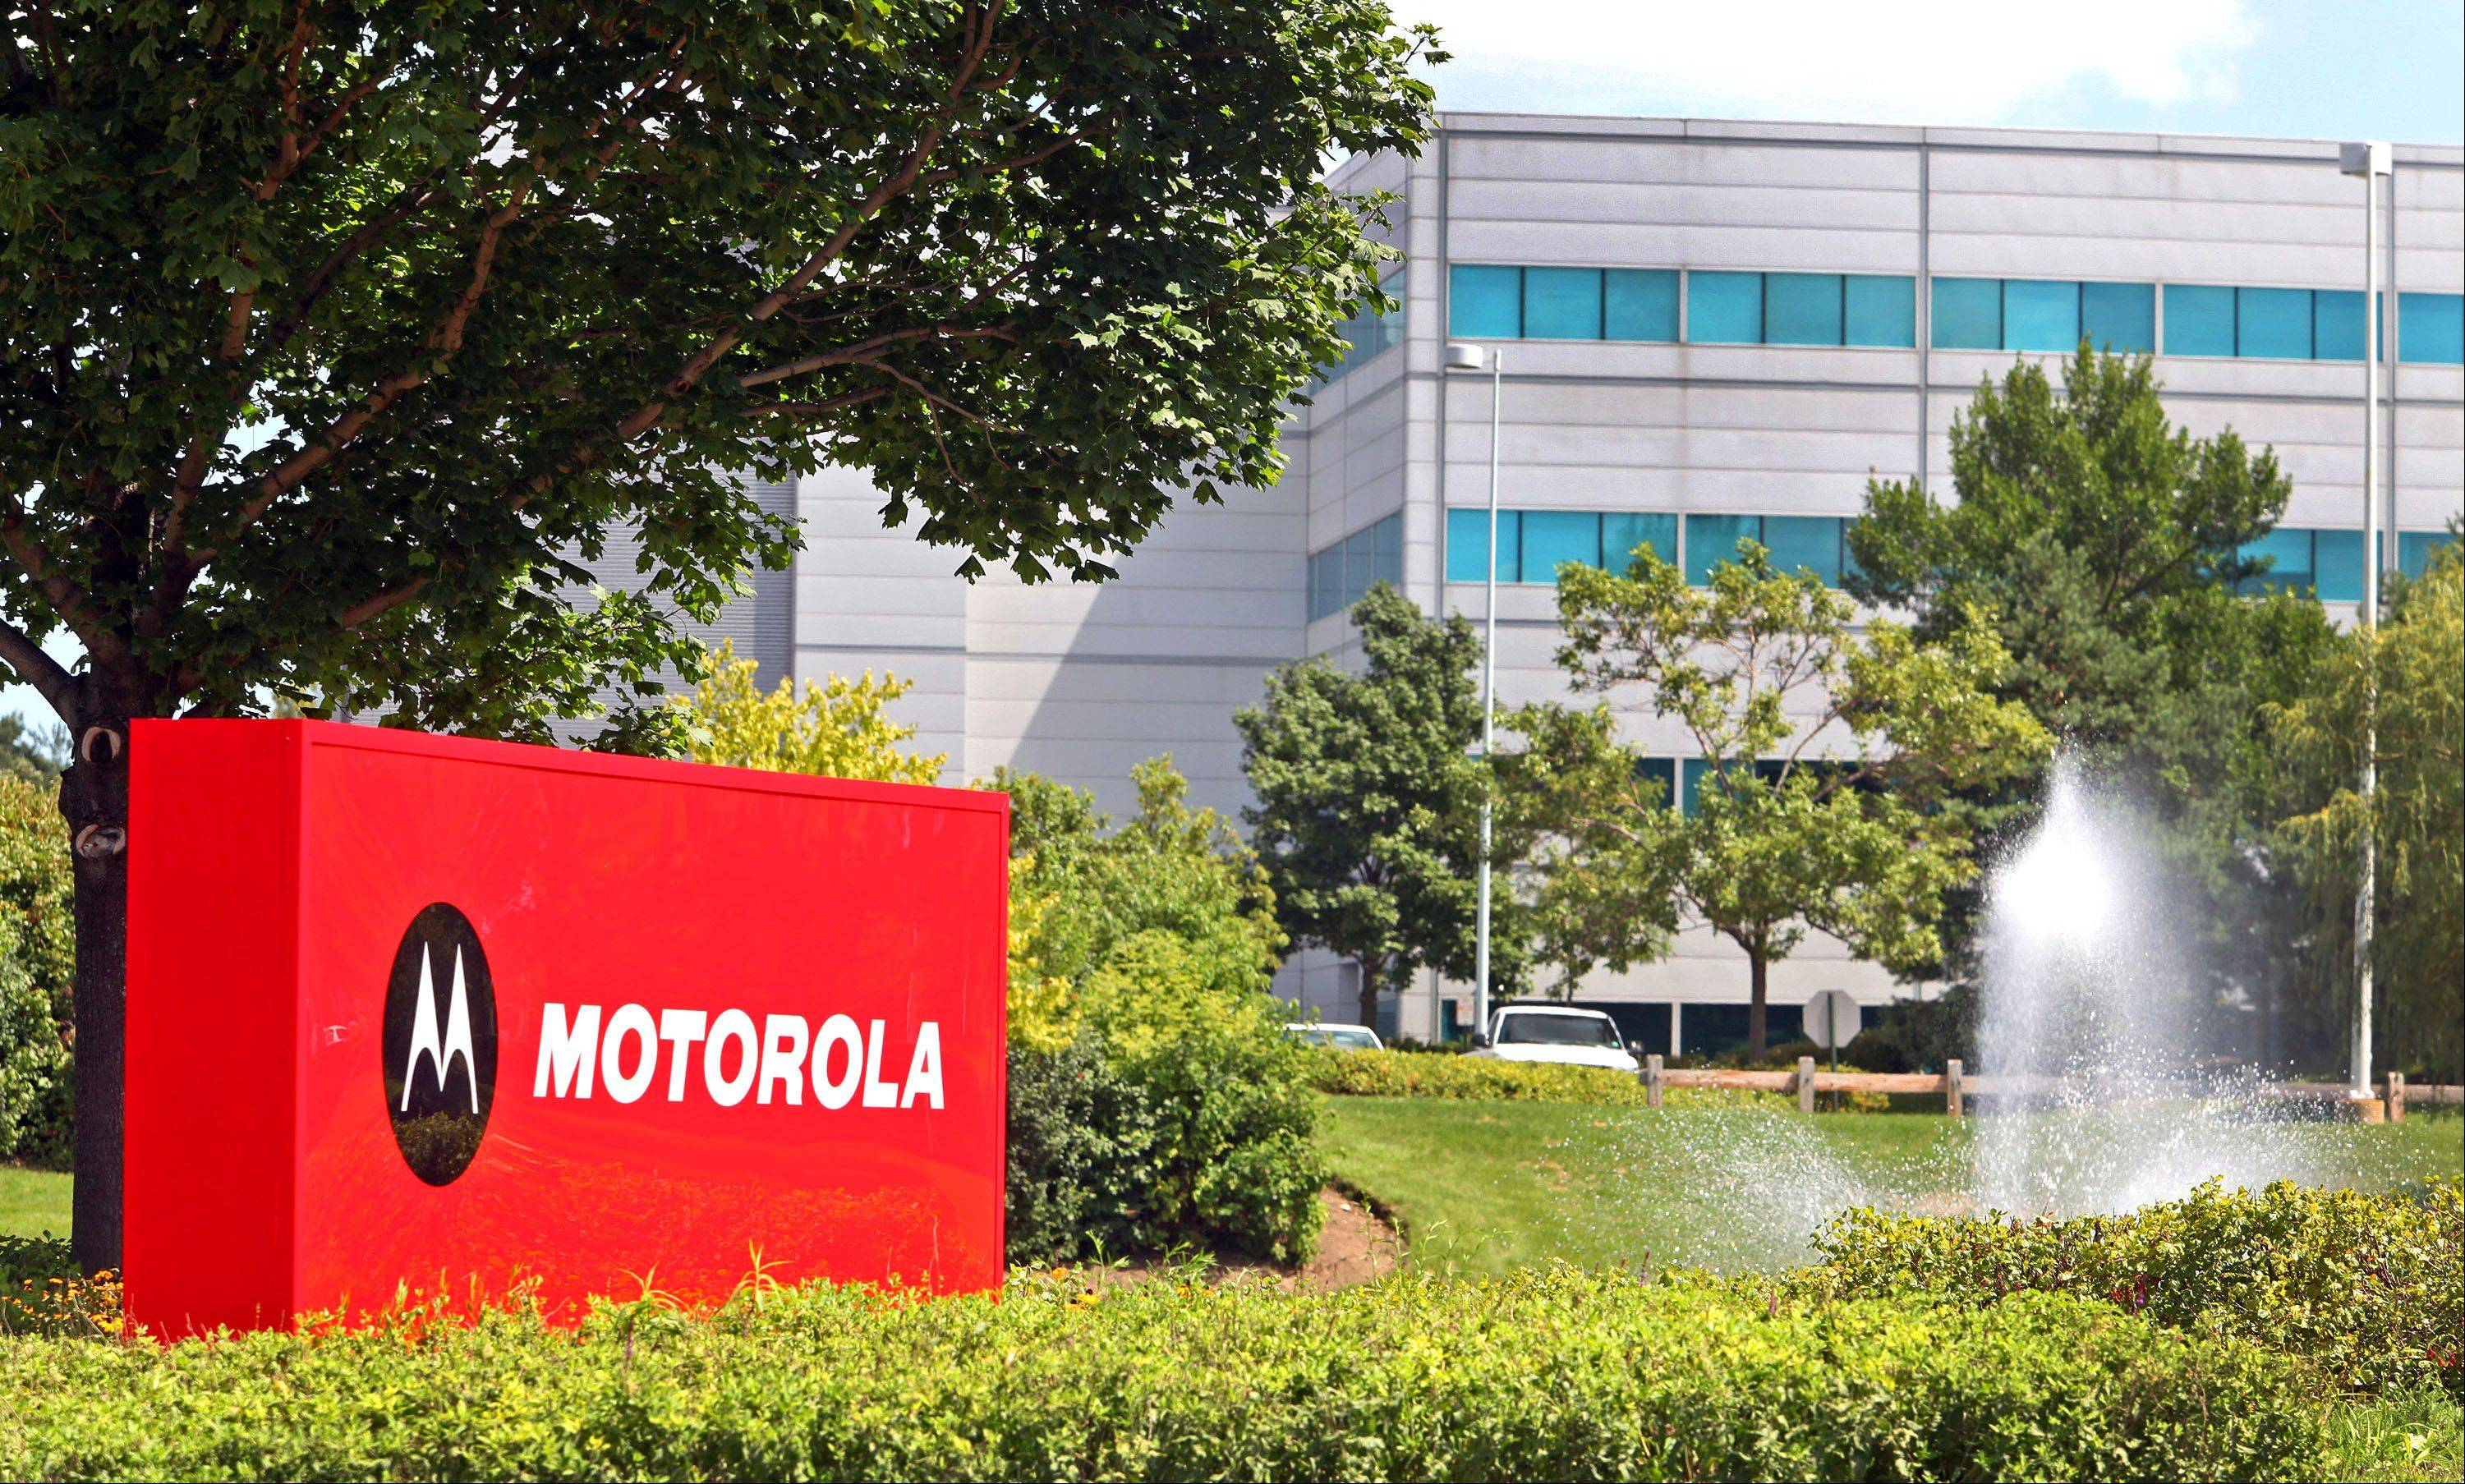 Lenovo's planned acquisition of Motorola Mobility Holdings Inc. won't affect the company's departure from this Libertyville campus for offices in Chicago.